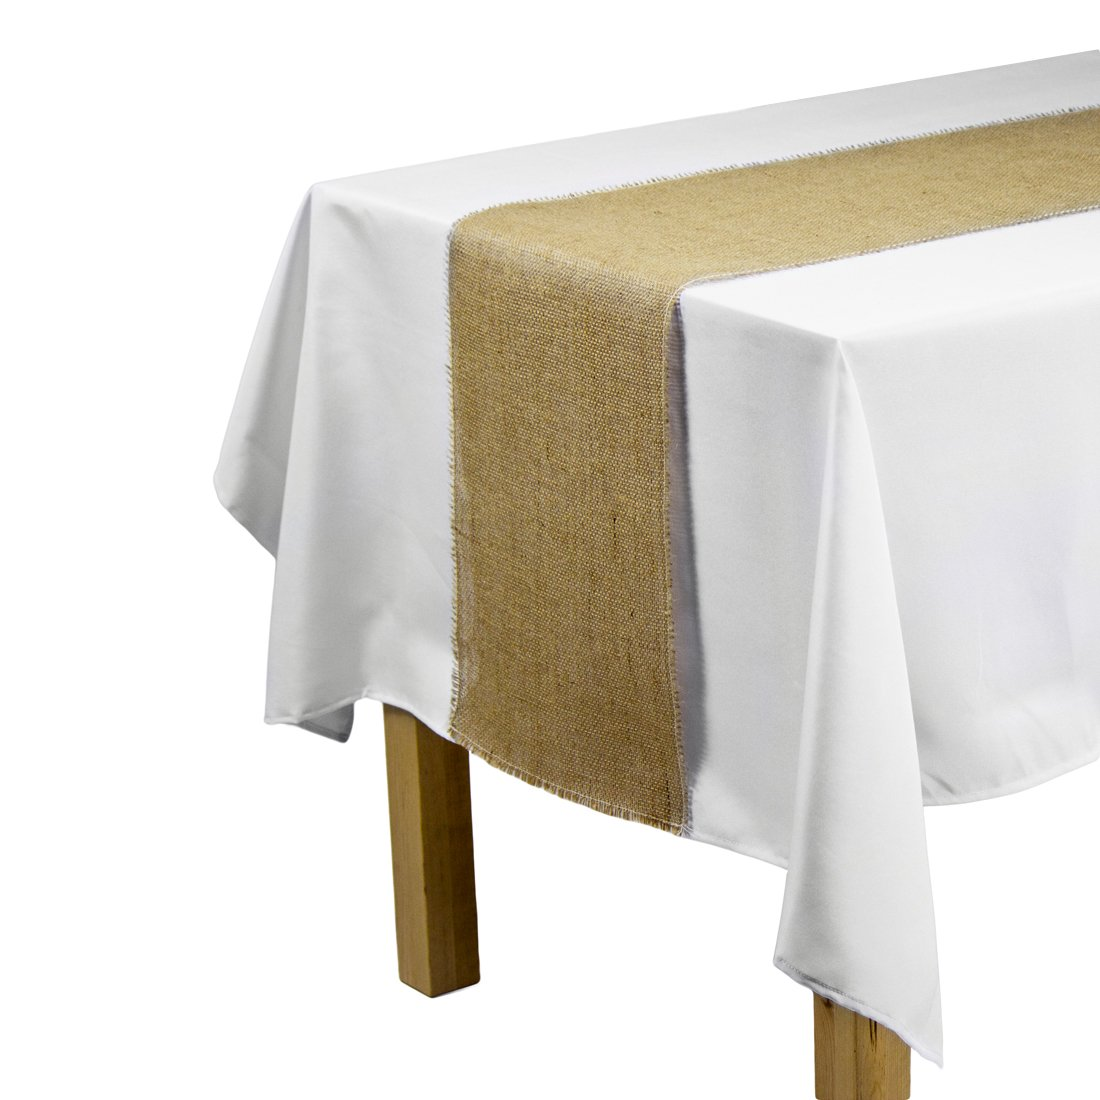 Amazon.com: LinenTablecloth Jute Table Runner With Fringe Edge, 12.5 By  120 Inch: Home U0026 Kitchen